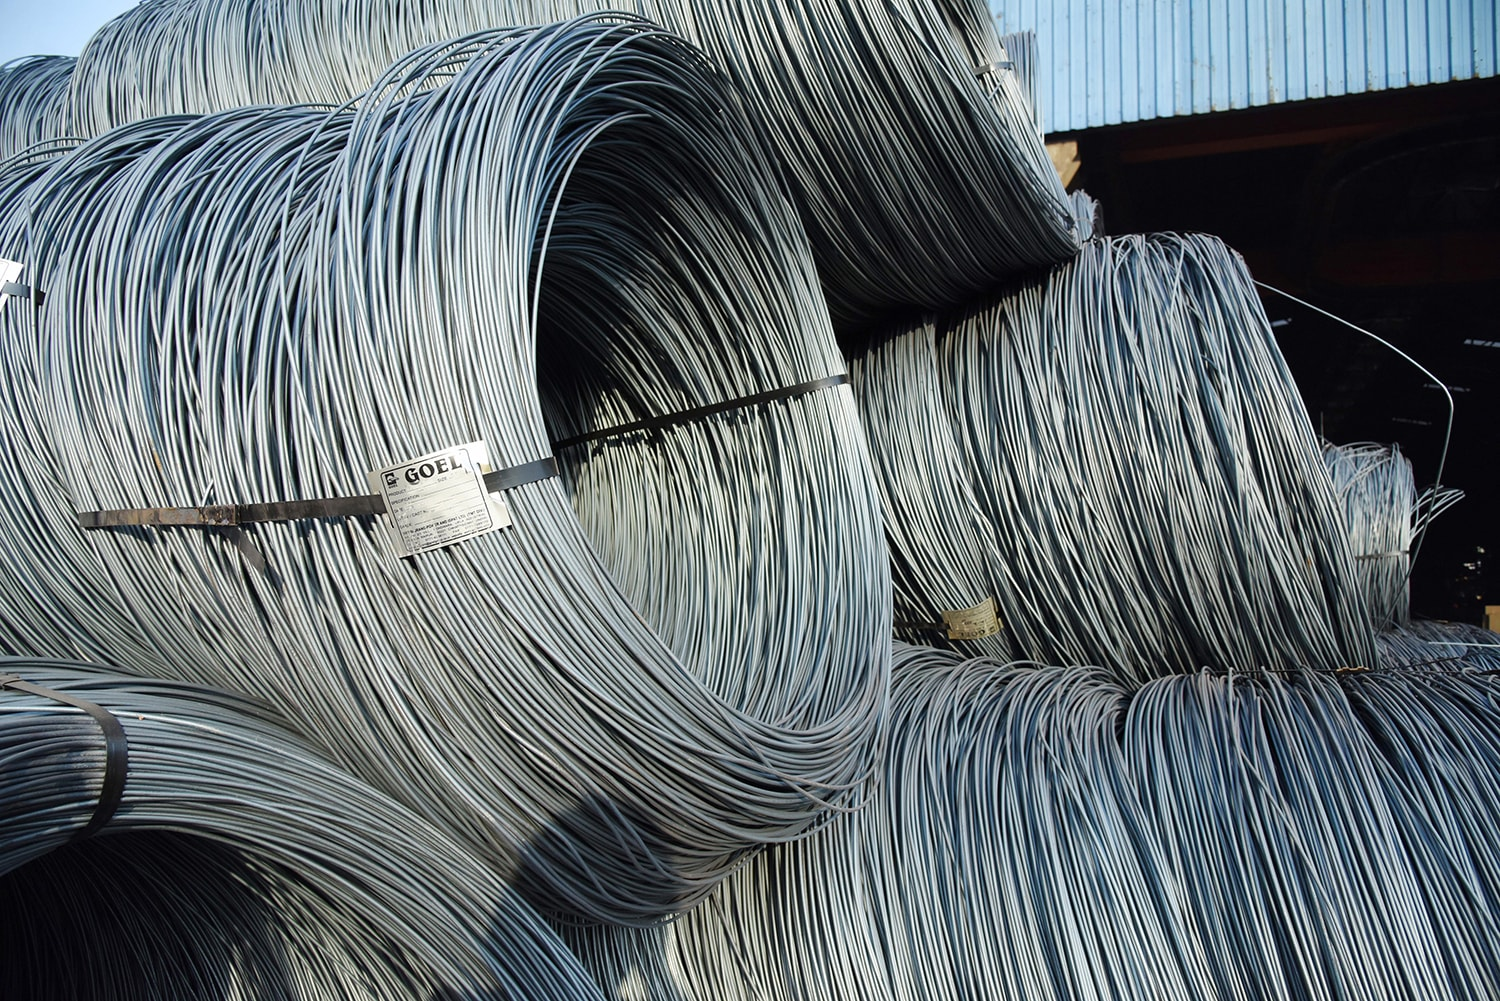 Wire rod image